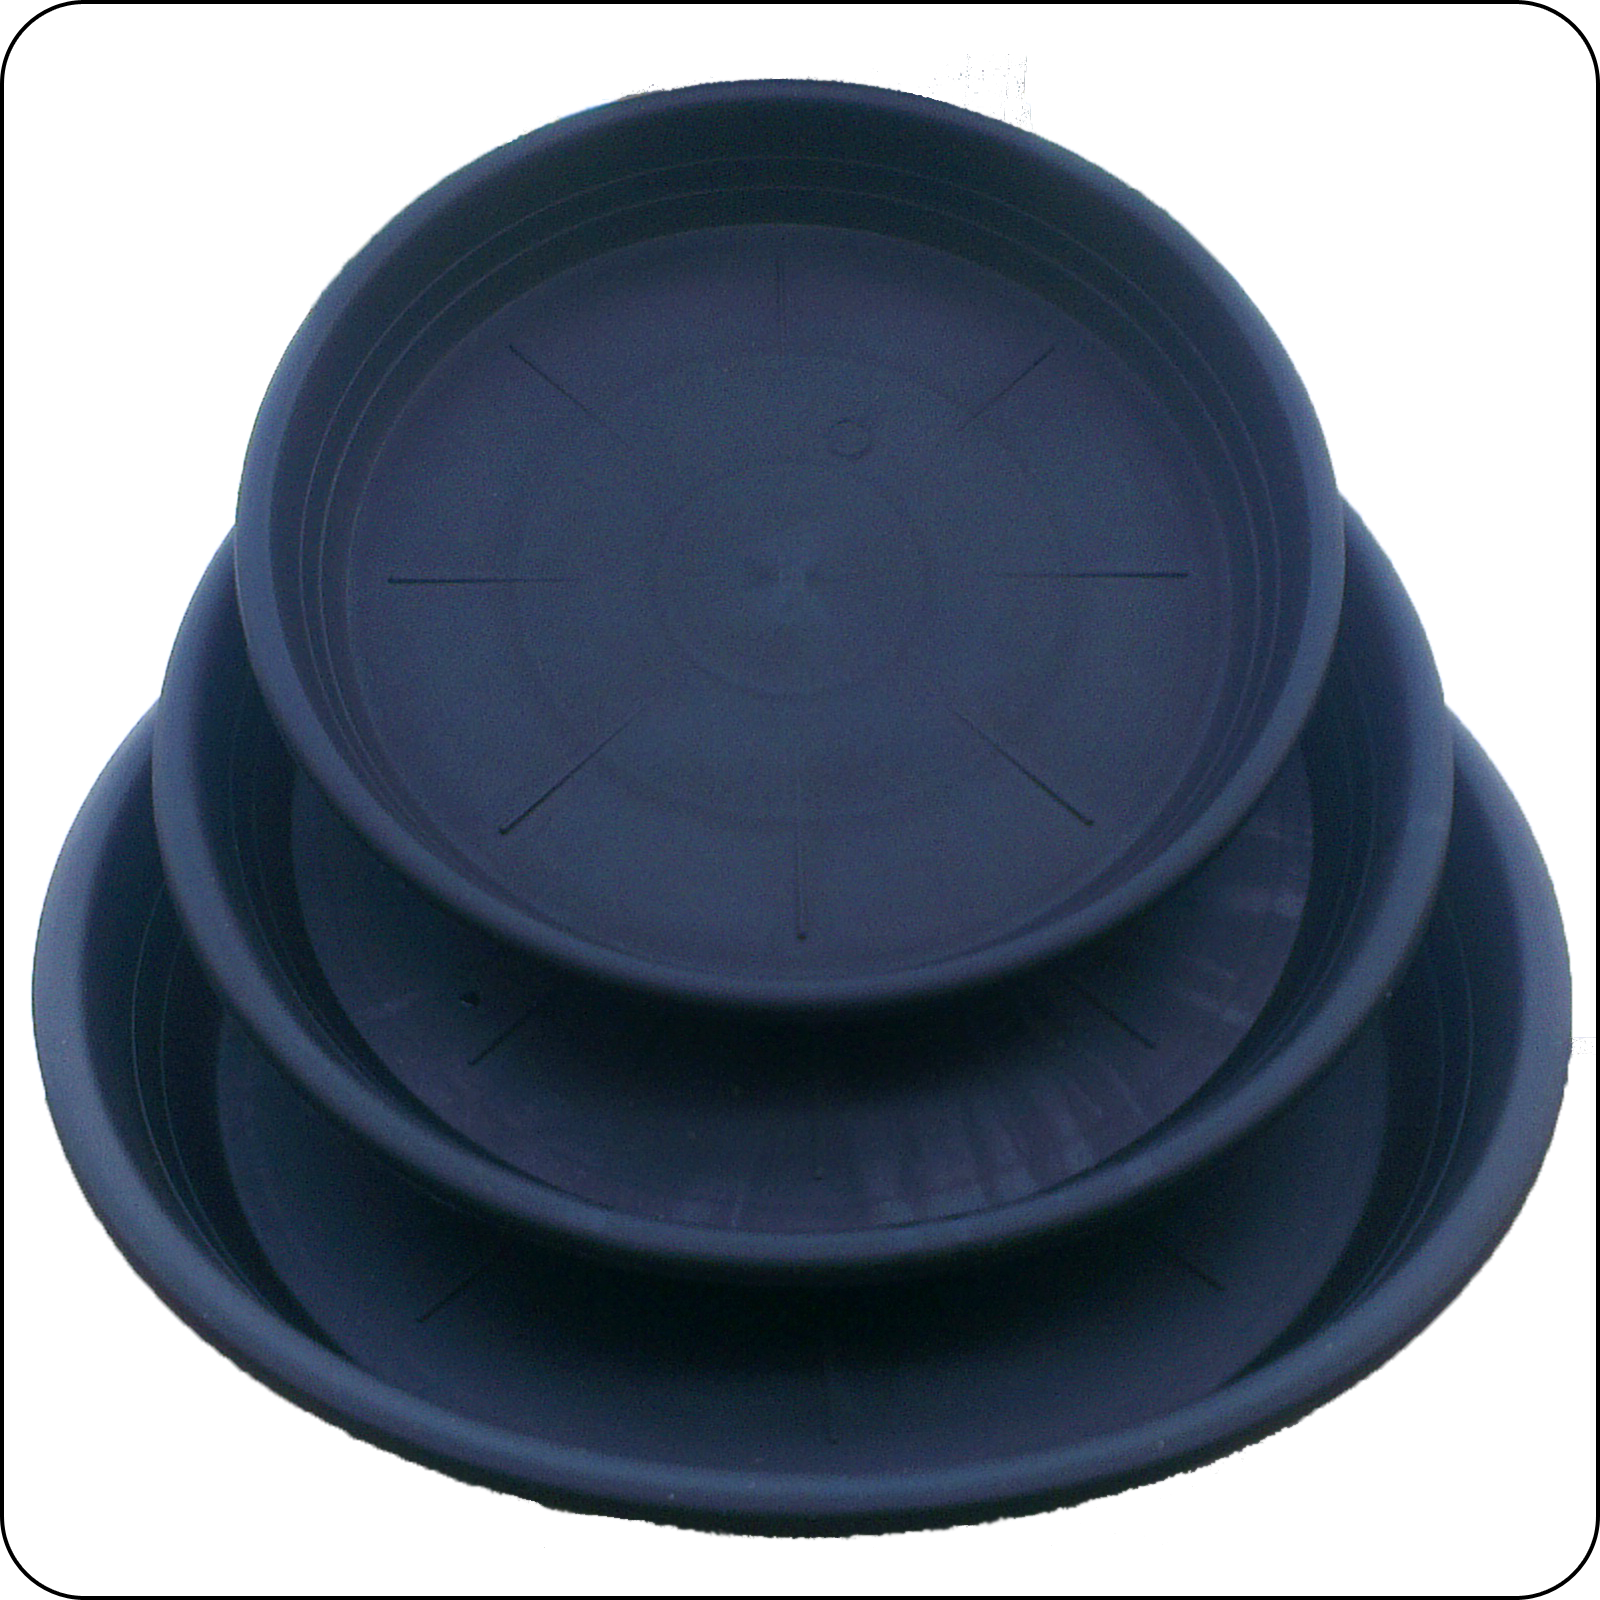 Round Black Plastic Plant Pot Saucers Water Tray Base